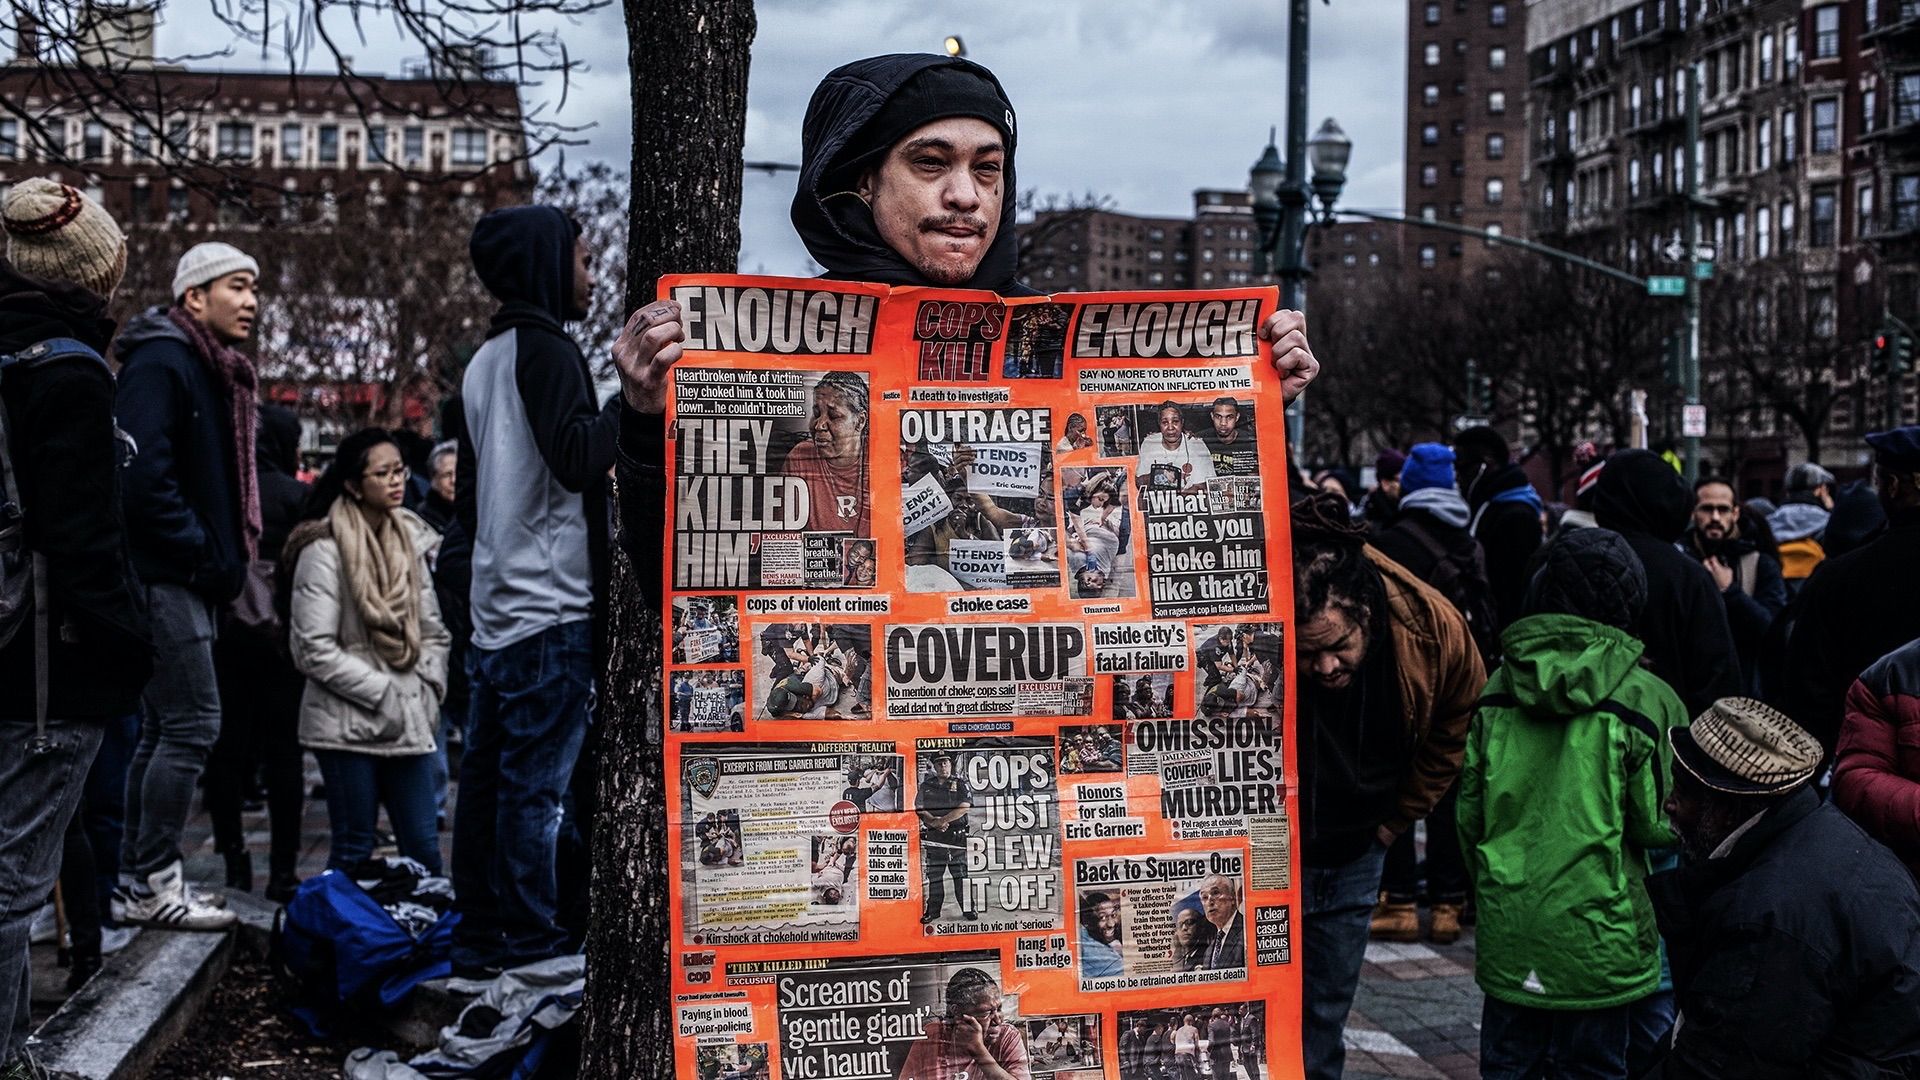 Incredible photos documenting the Black Lives Matter movement